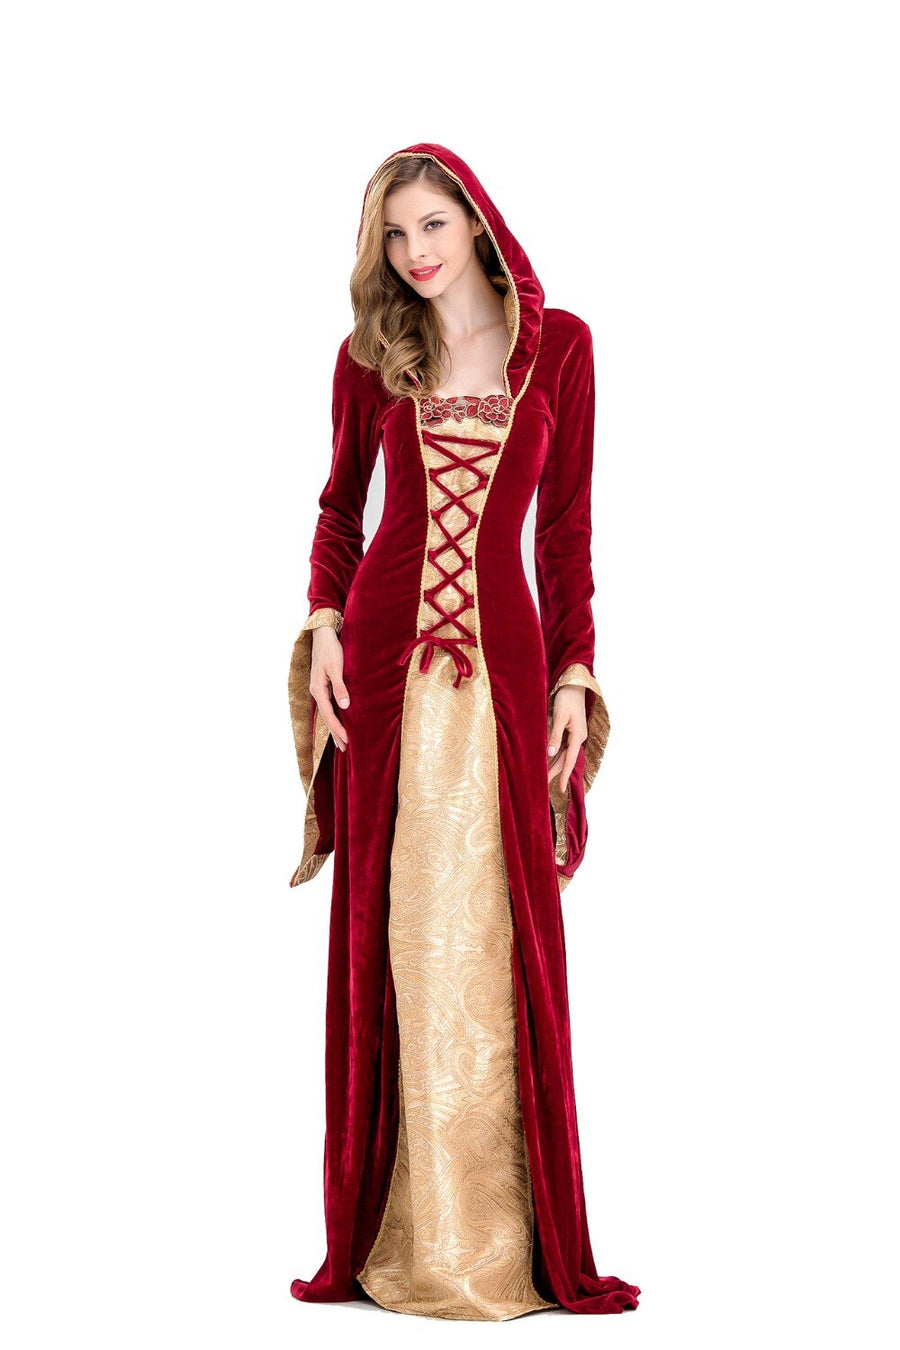 Medieval Dress Robe Women Renaissance Dress Princess Queen Costume Velvet Court Maid Halloween Costume Vintage Hooded Gown